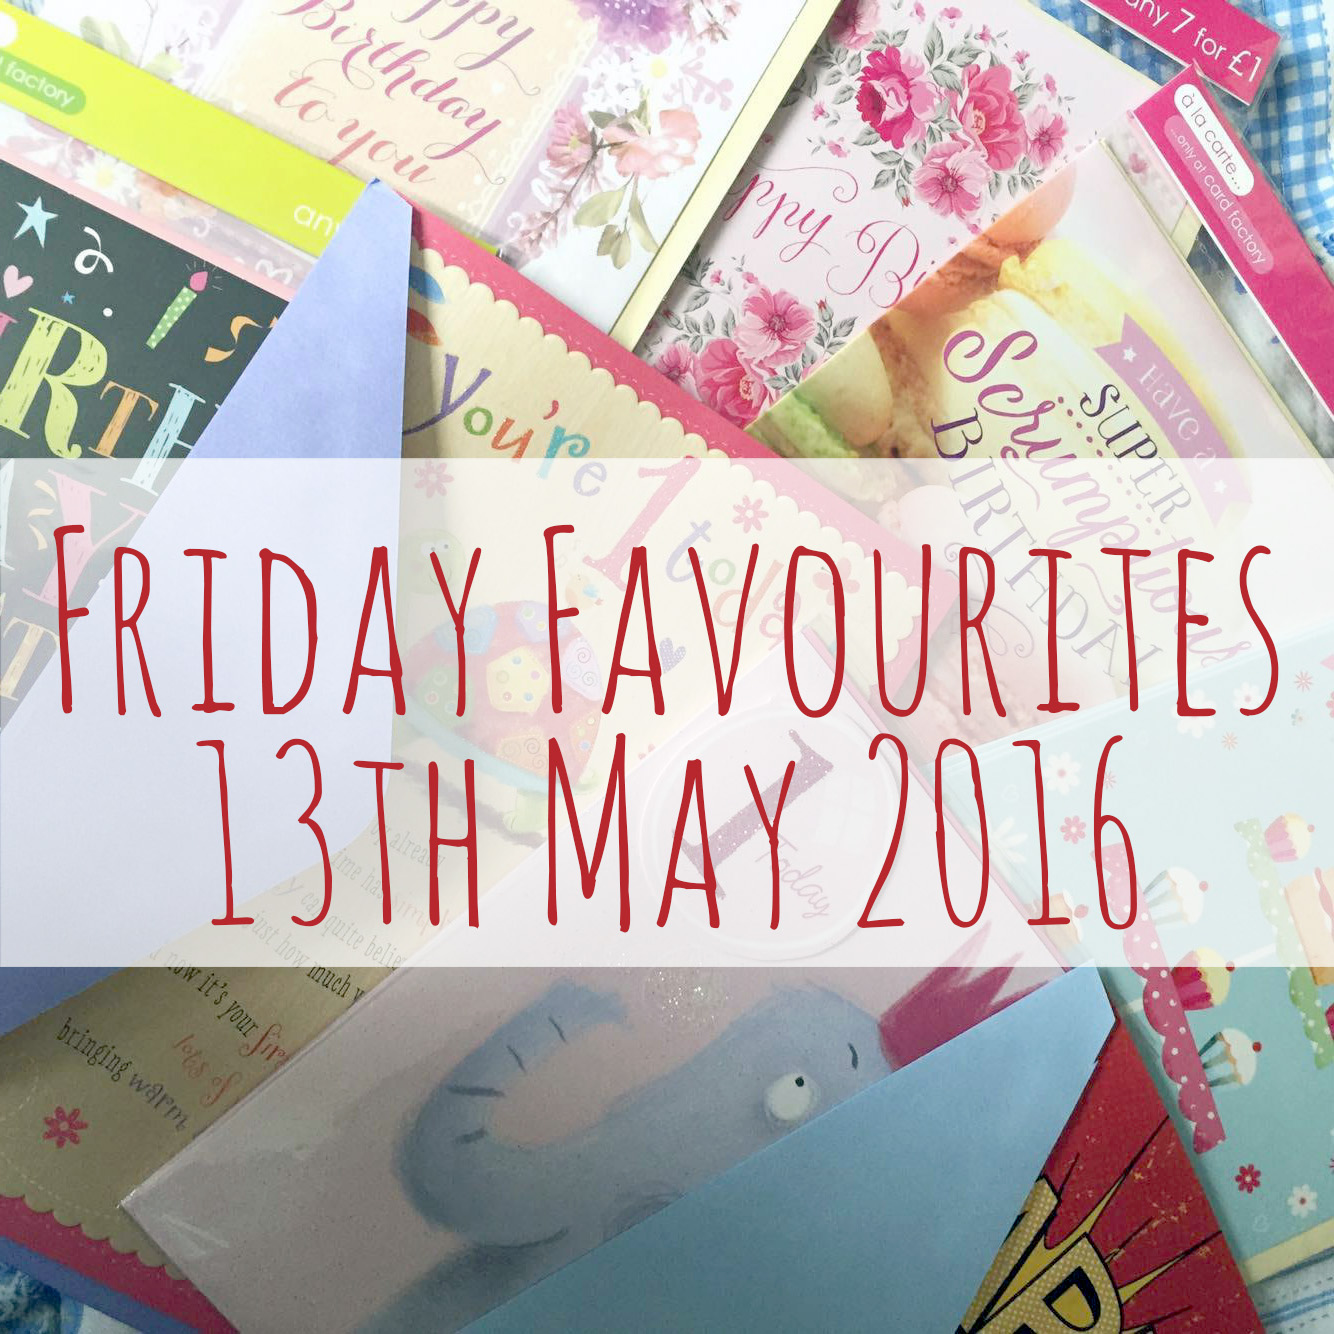 Friday Favourites 13th May 2016